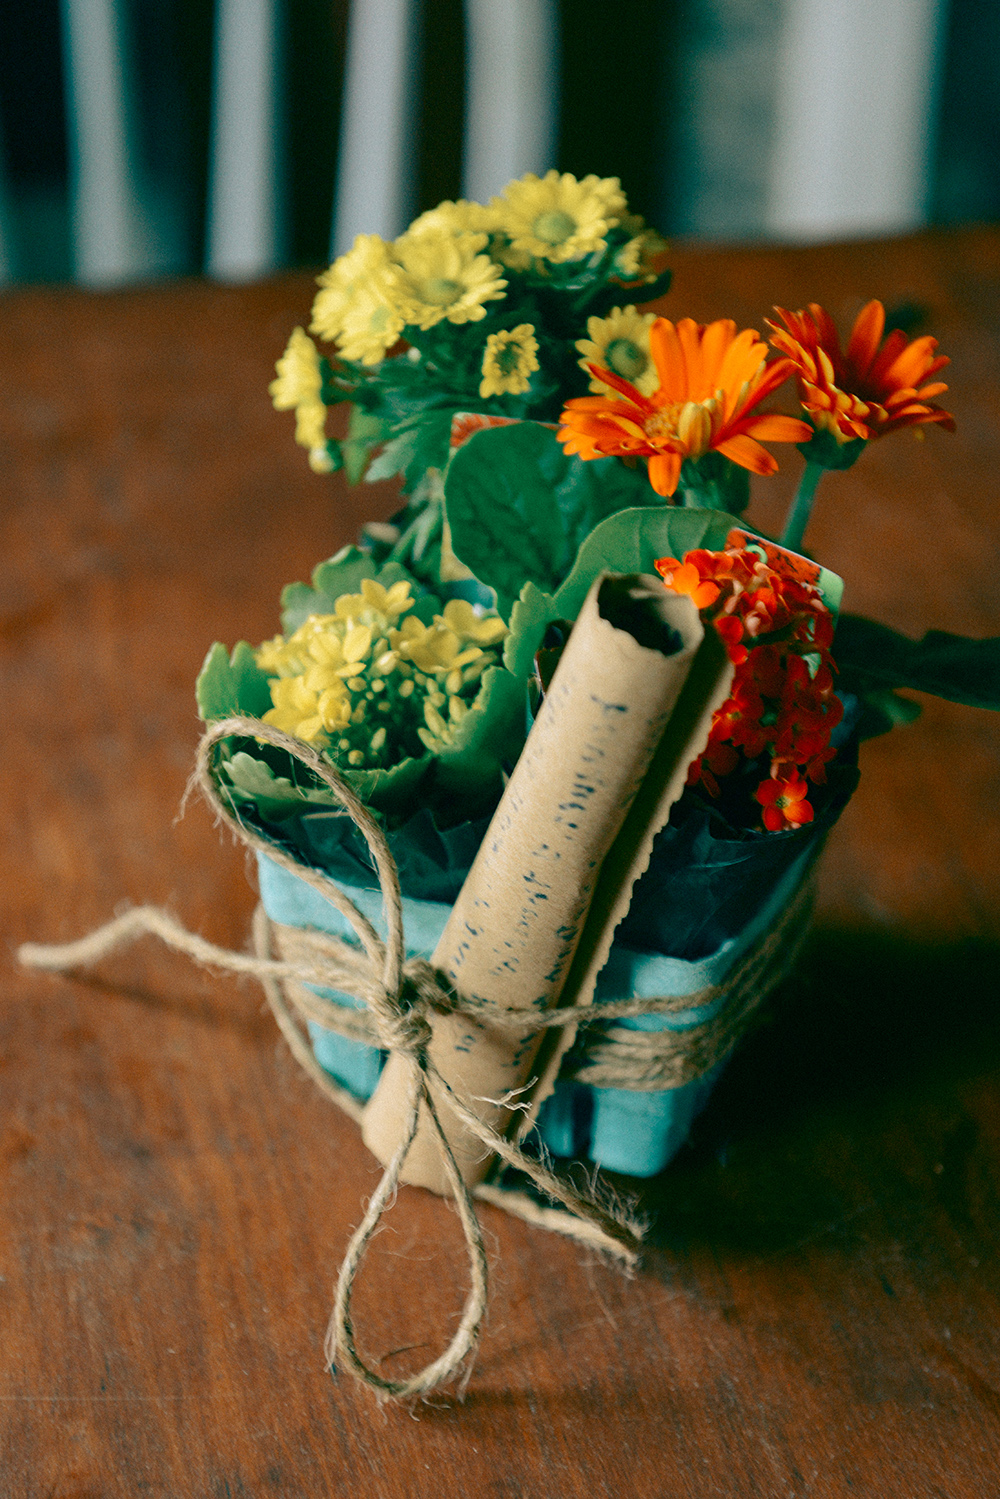 Flowers and Fruit by With The Grains 01